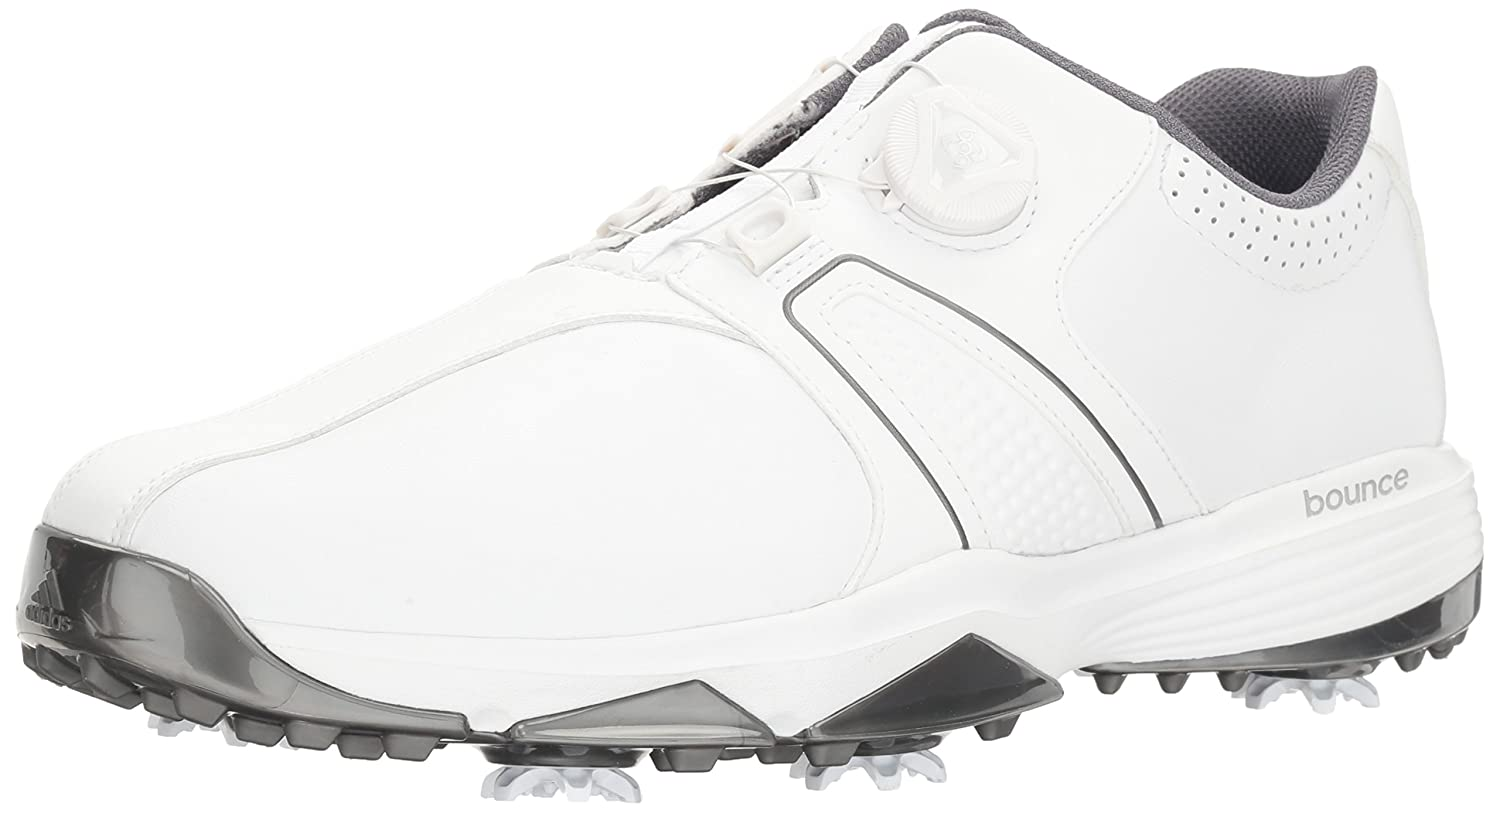 Calma lechuga paquete  Adidas Men's 360 Traxion Boa Golf Shoe, White, 7.5 W US: Buy Online at Low  Prices in India - Amazon.in